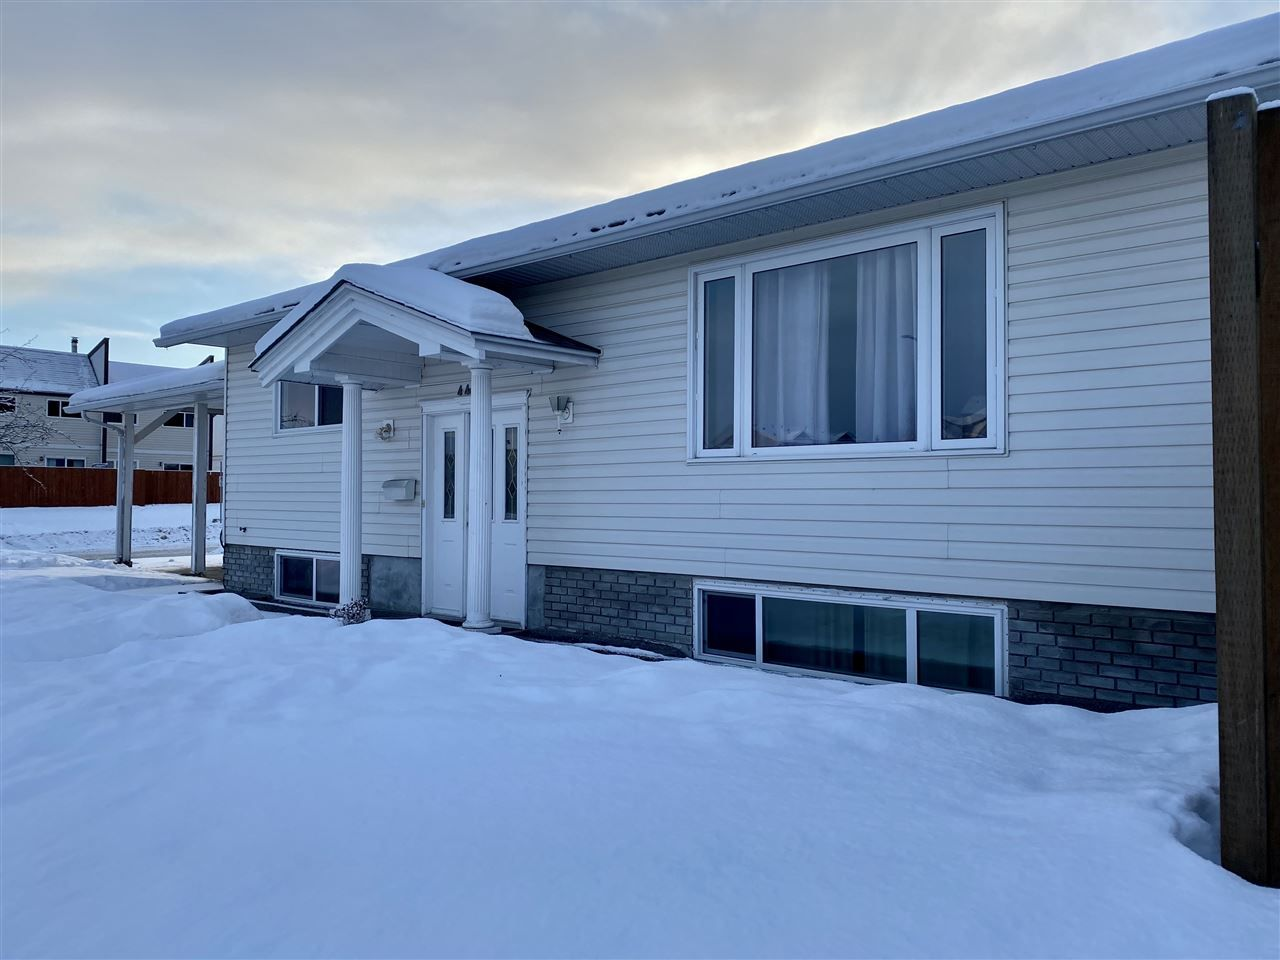 """Main Photo: 4401 5TH Avenue in Prince George: Foothills House for sale in """"FOOTHILLS"""" (PG City West (Zone 71))  : MLS®# R2425323"""